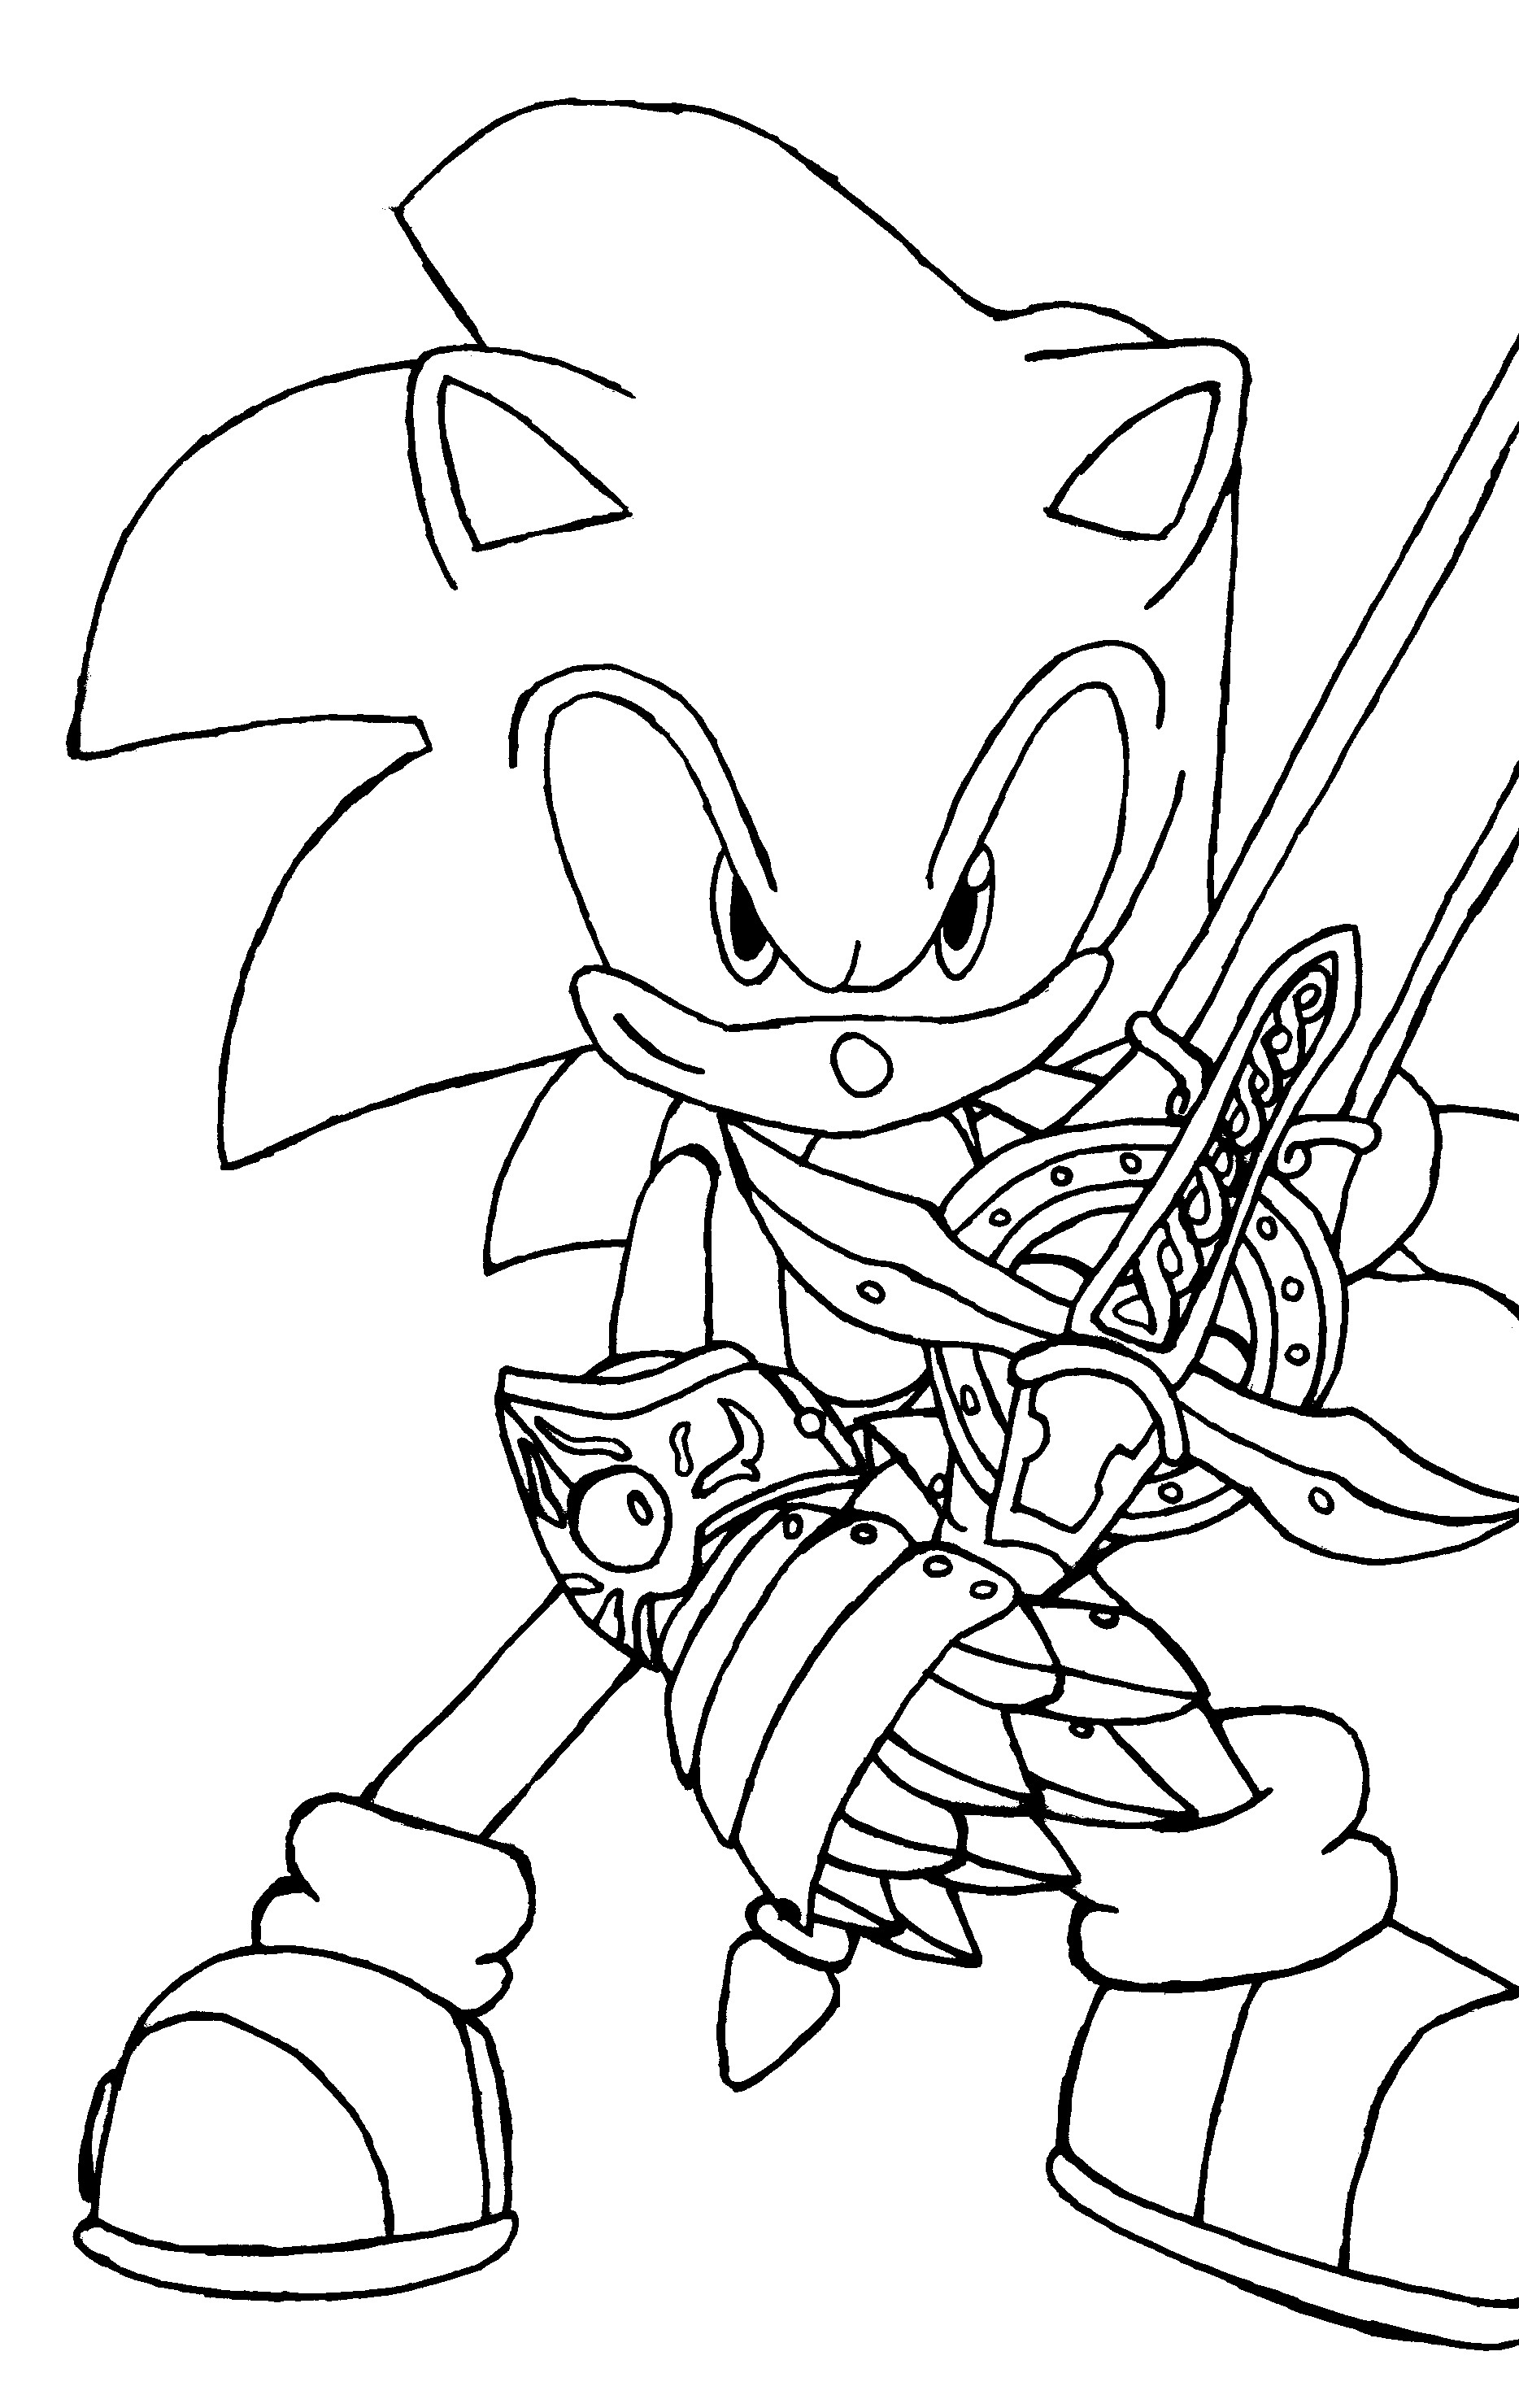 Sonic Coloring Pages Online For Free - Coloring Home - Sonic Coloring Pages Free Printable